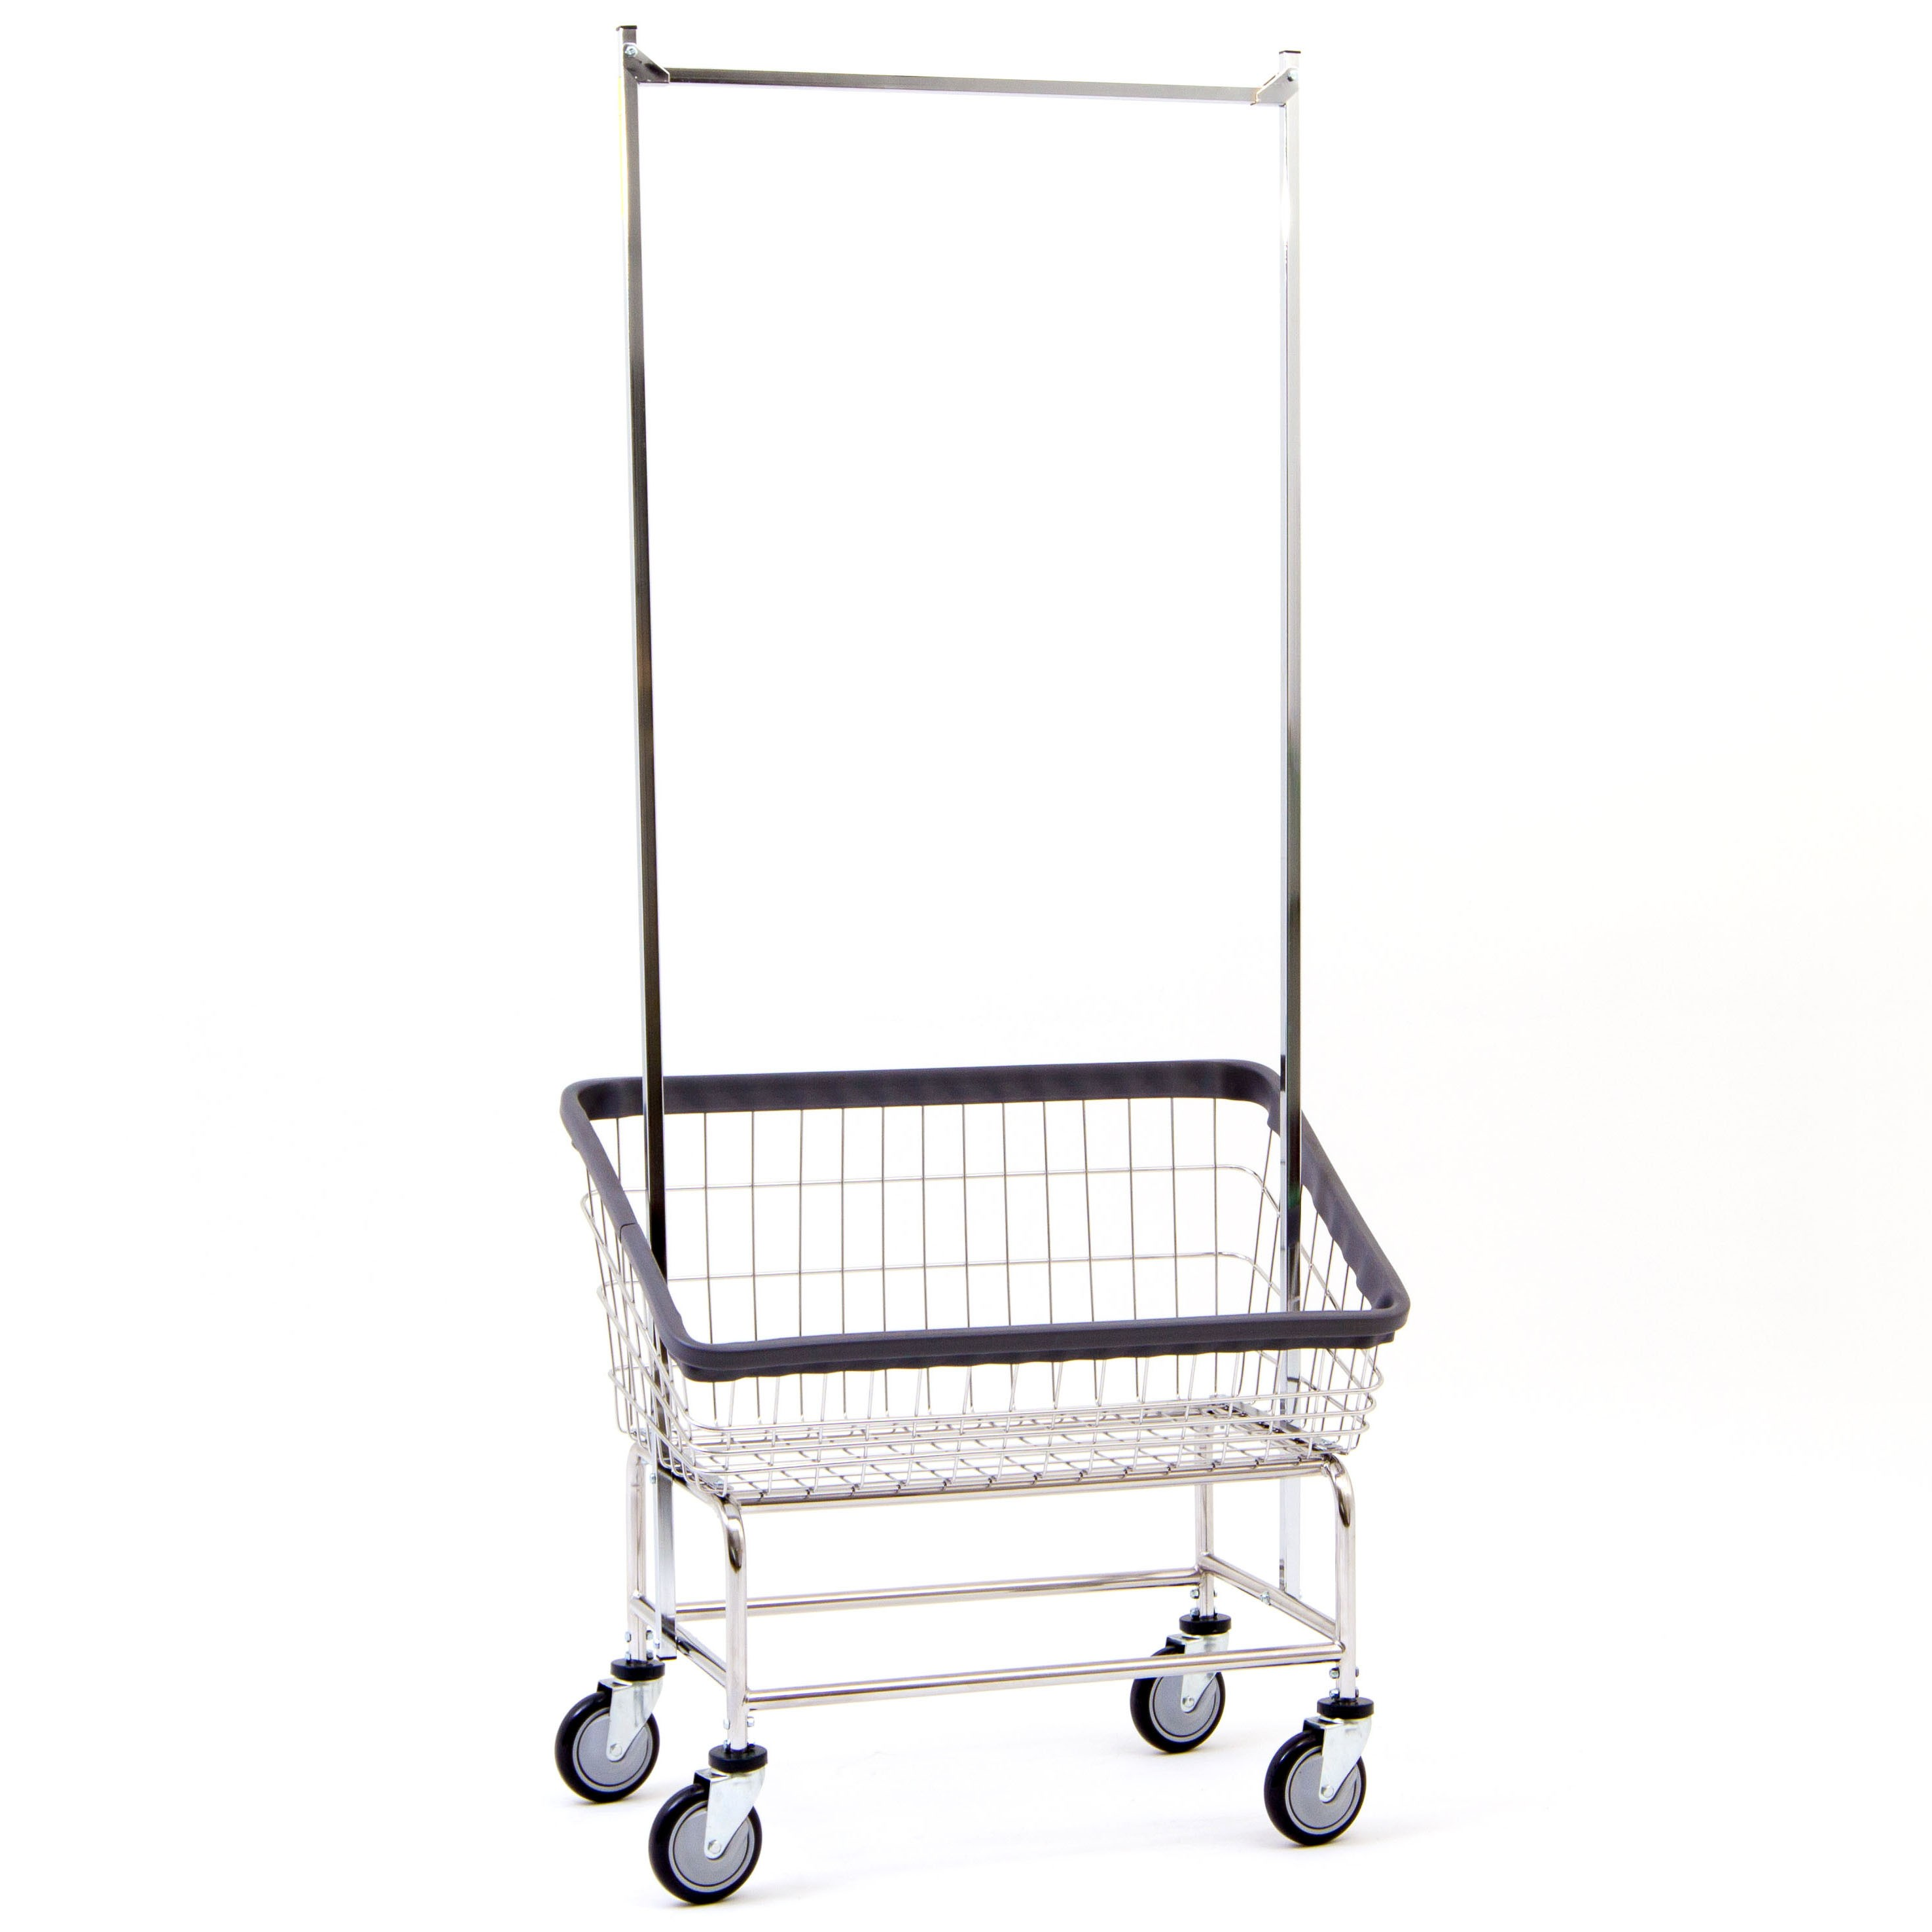 Large Capacity Front Load Laundry Cart 200S56